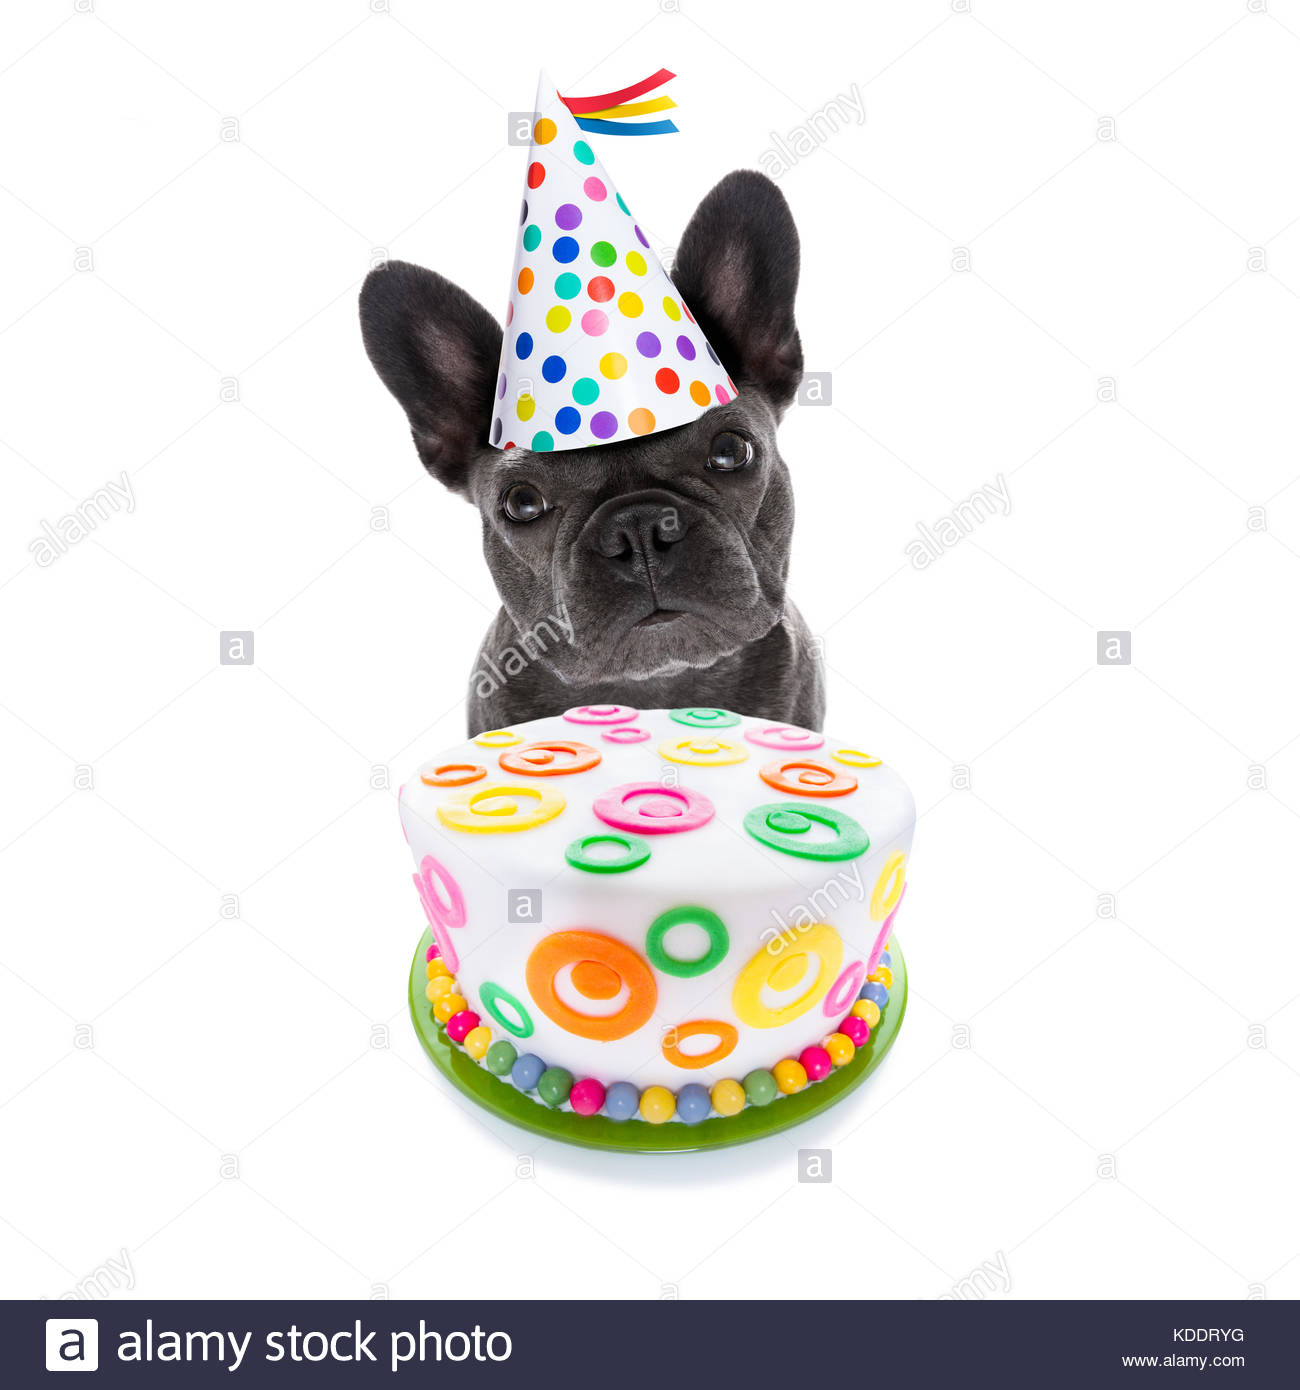 french bulldog birthday picture ; french-bulldog-dog-hungry-for-a-happy-birthday-cake-wearing-party-KDDRYG